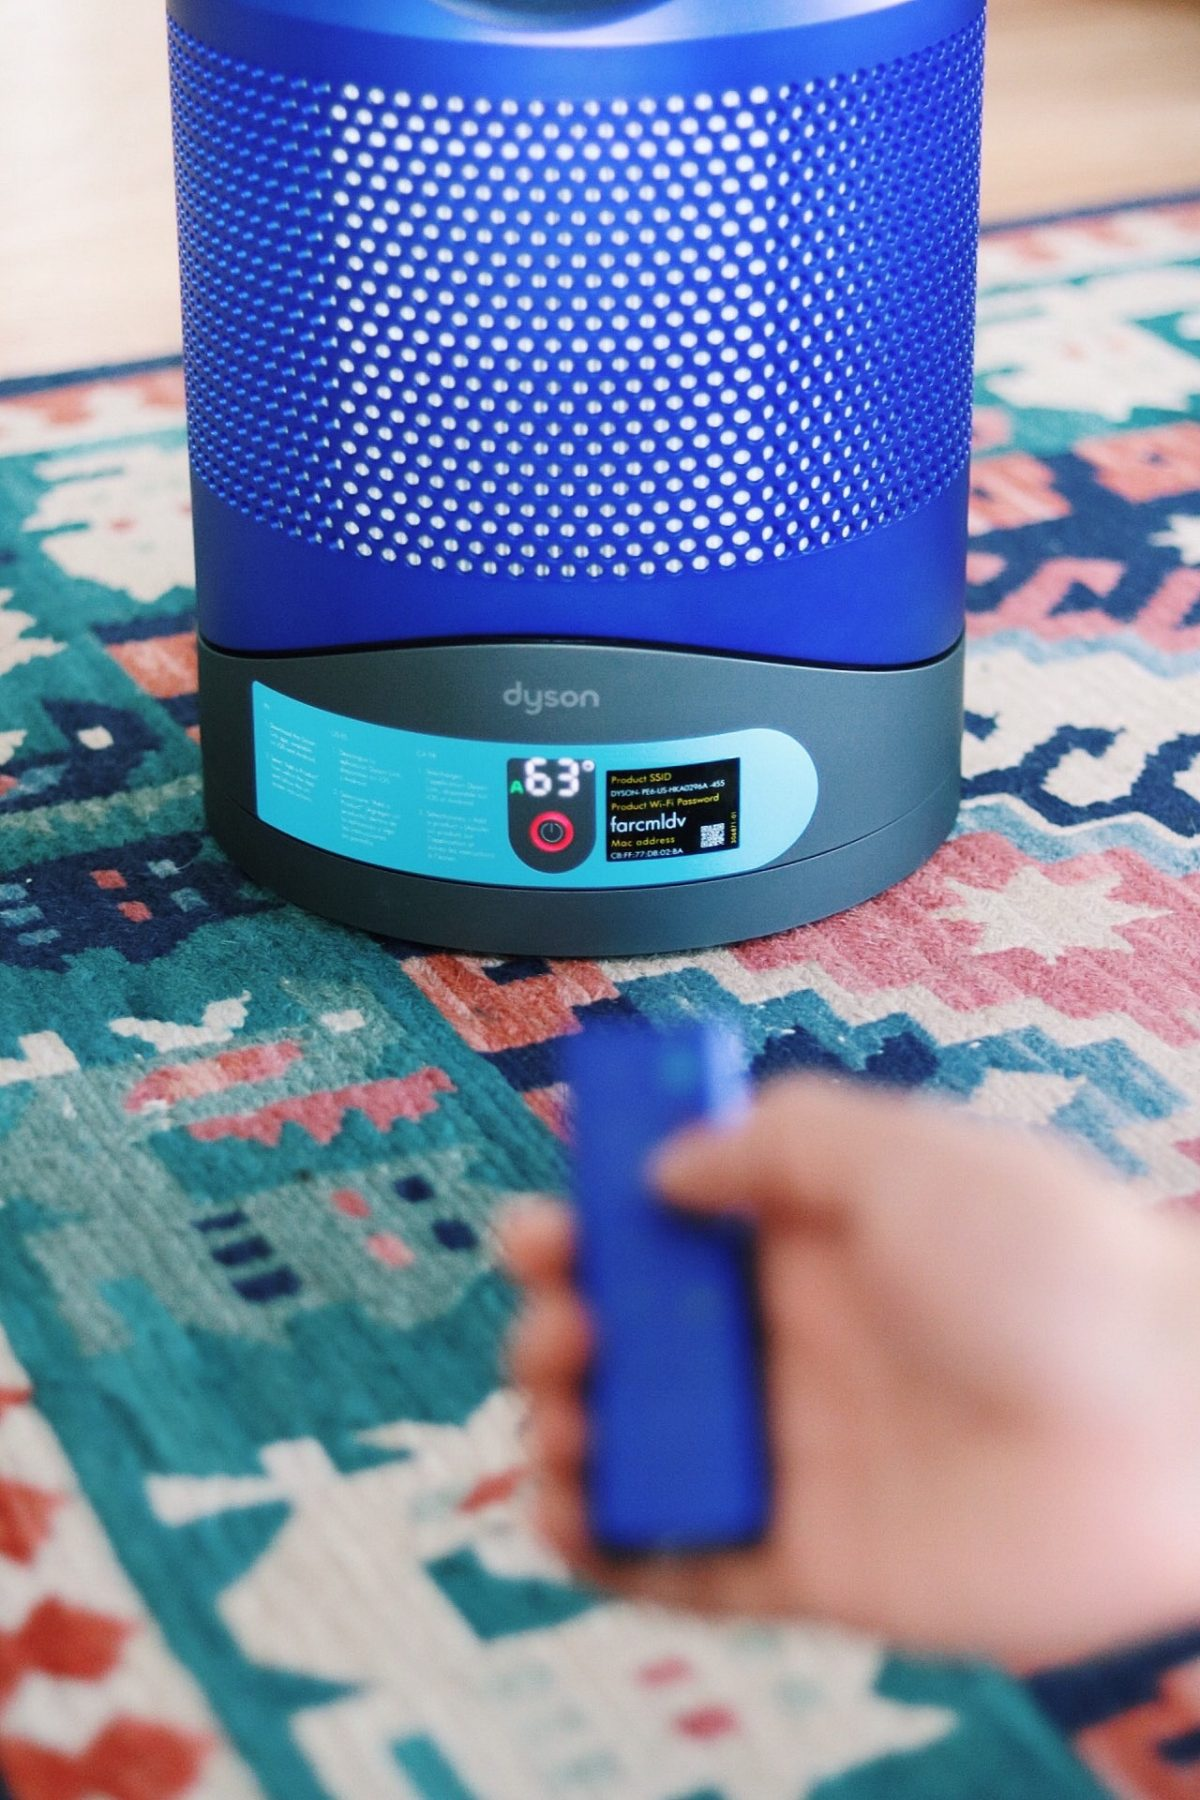 Dyson air purifier with remote